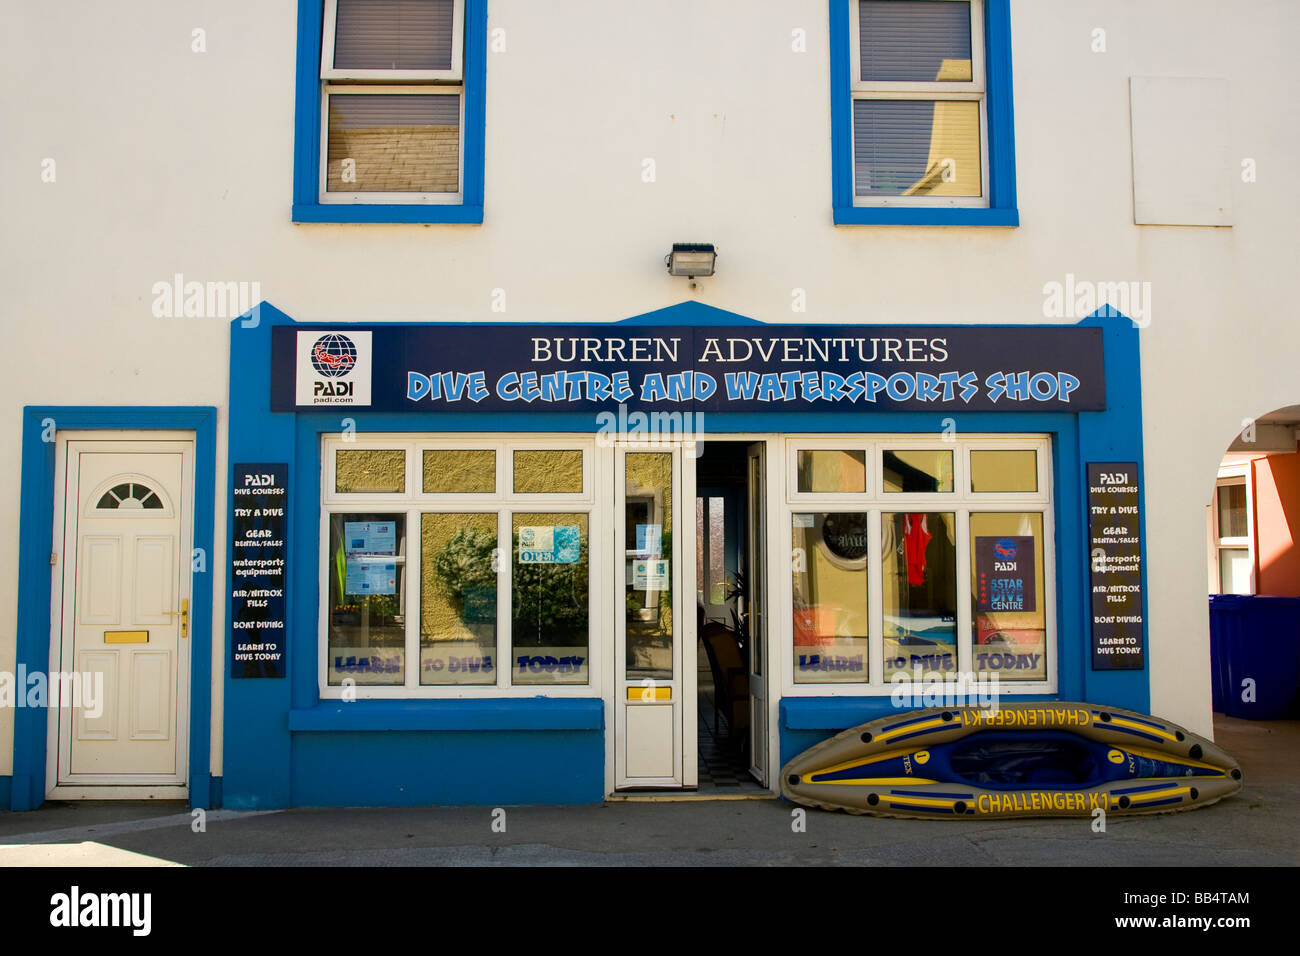 Europe, Ireland, Ballyvaughan. Store front of a dive center and watersports shop in the town center. - Stock Image